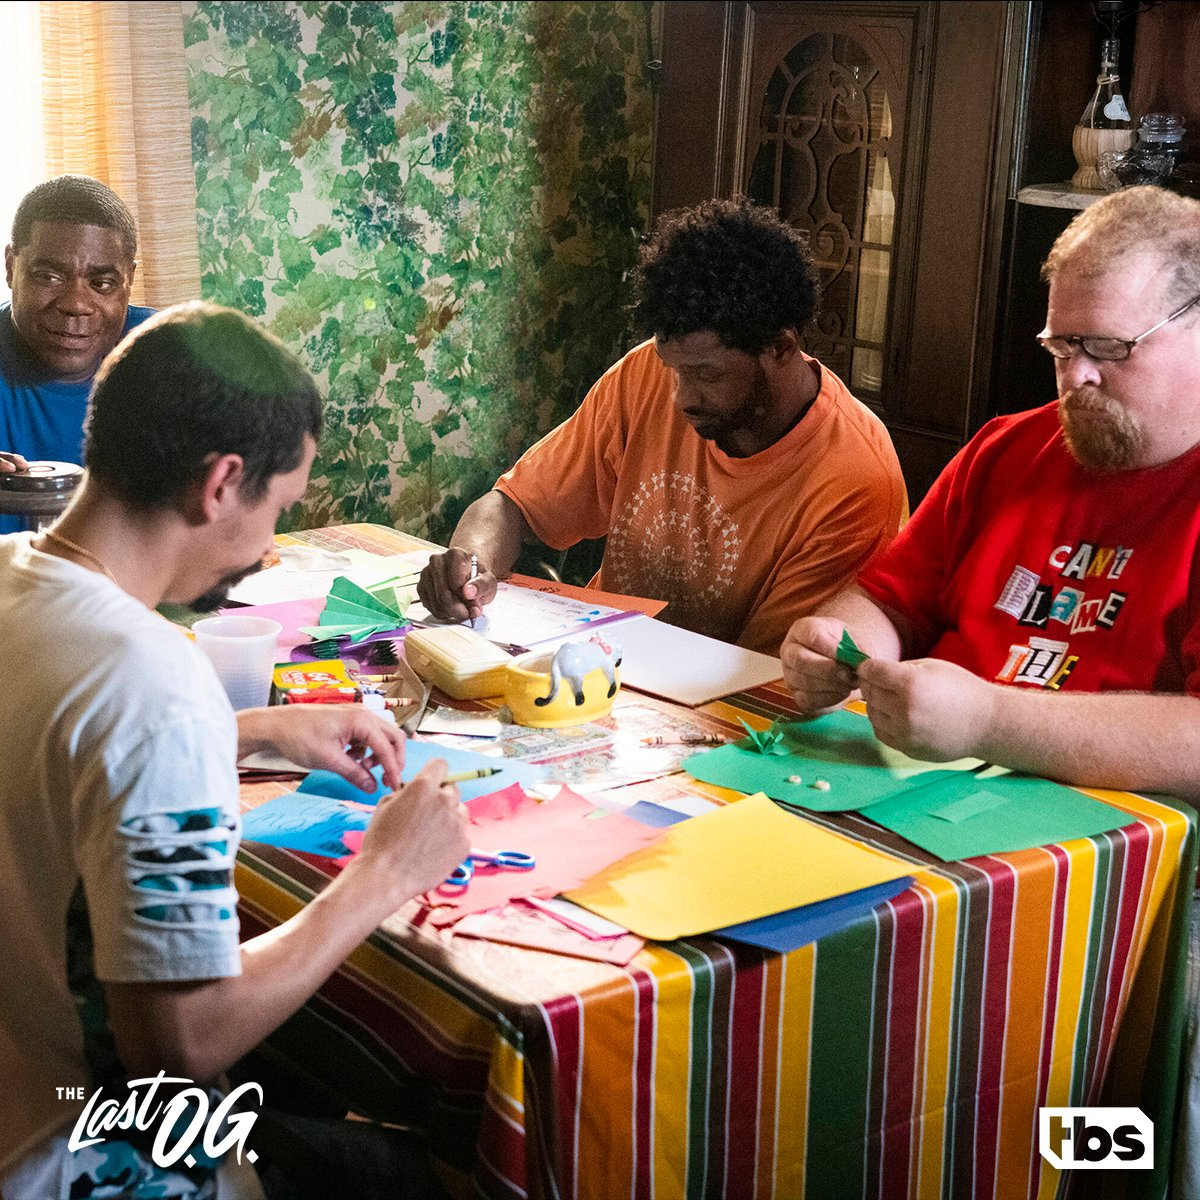 Remembering the good ol' days with the halfway house crew. #TheLastOG